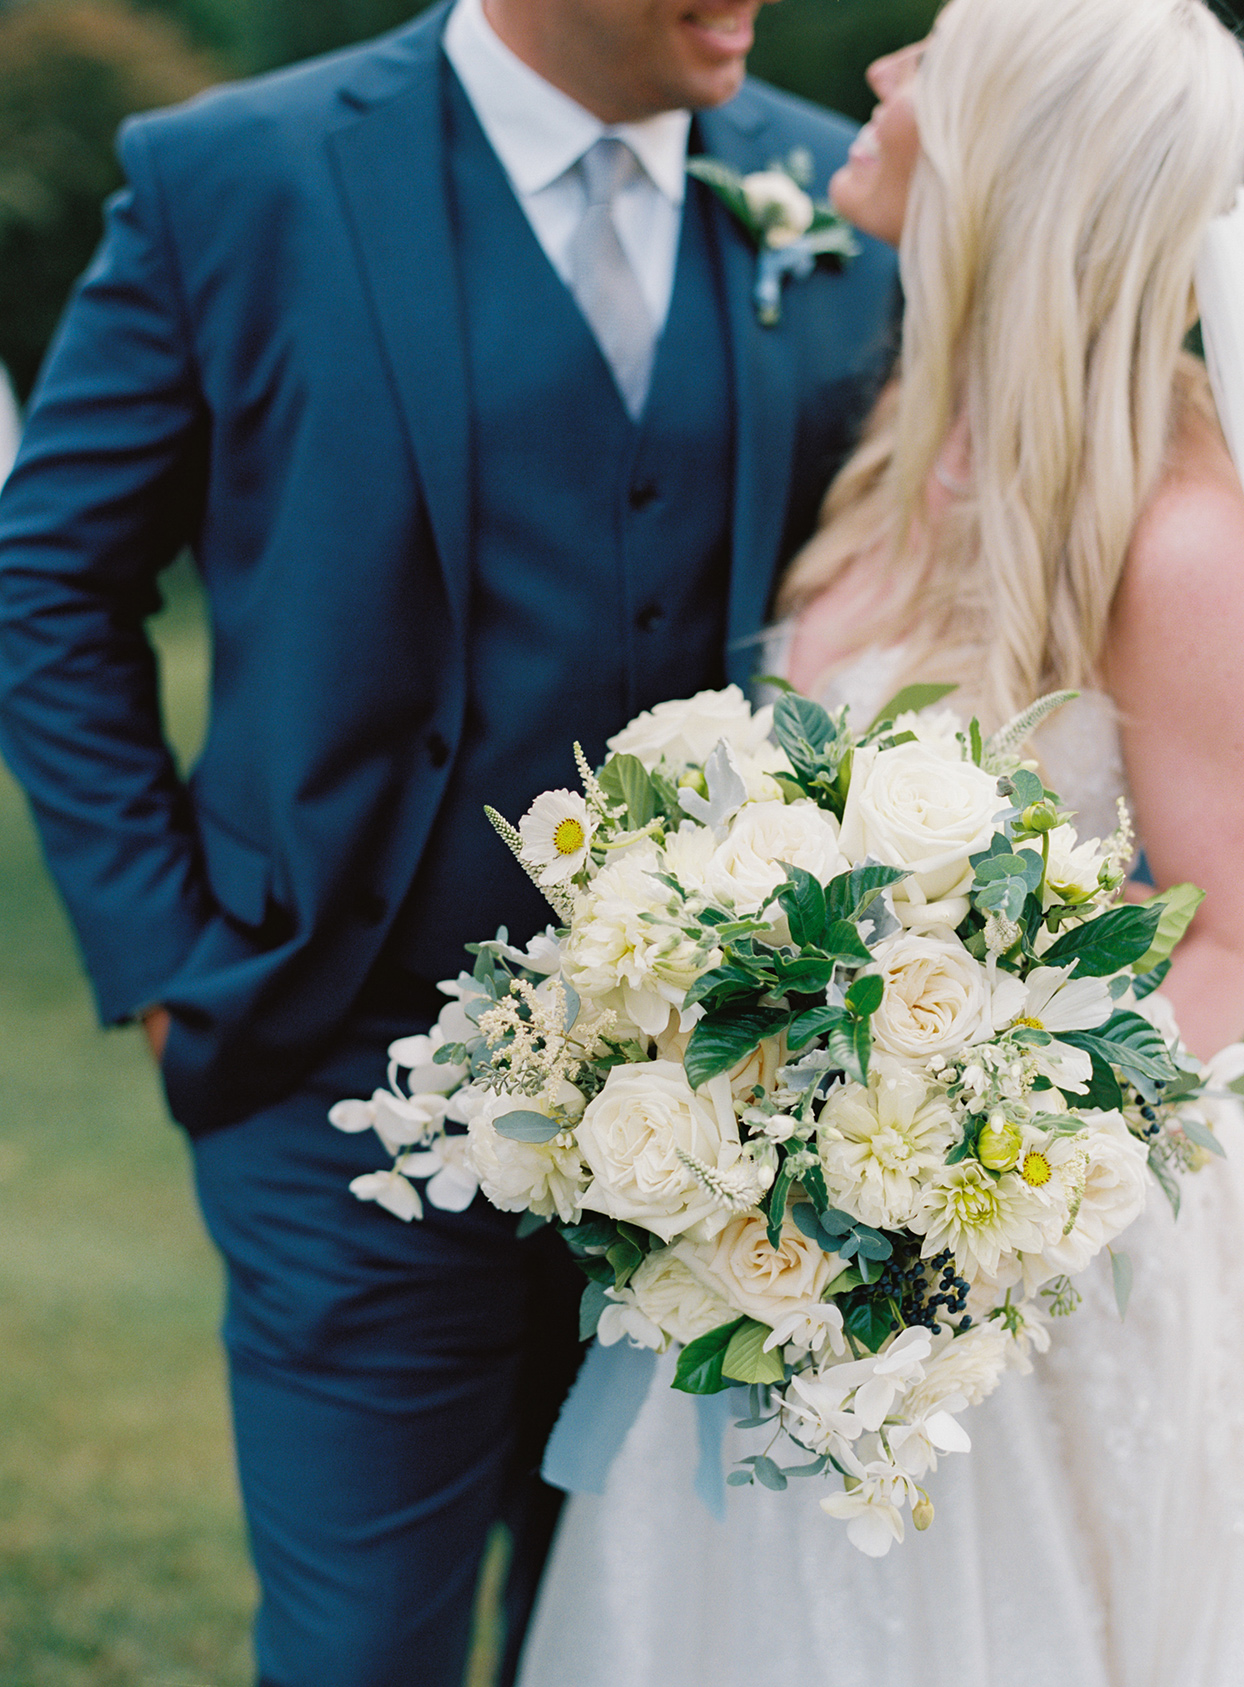 lauren chris couple standing together while bride holds white wedding bouquet